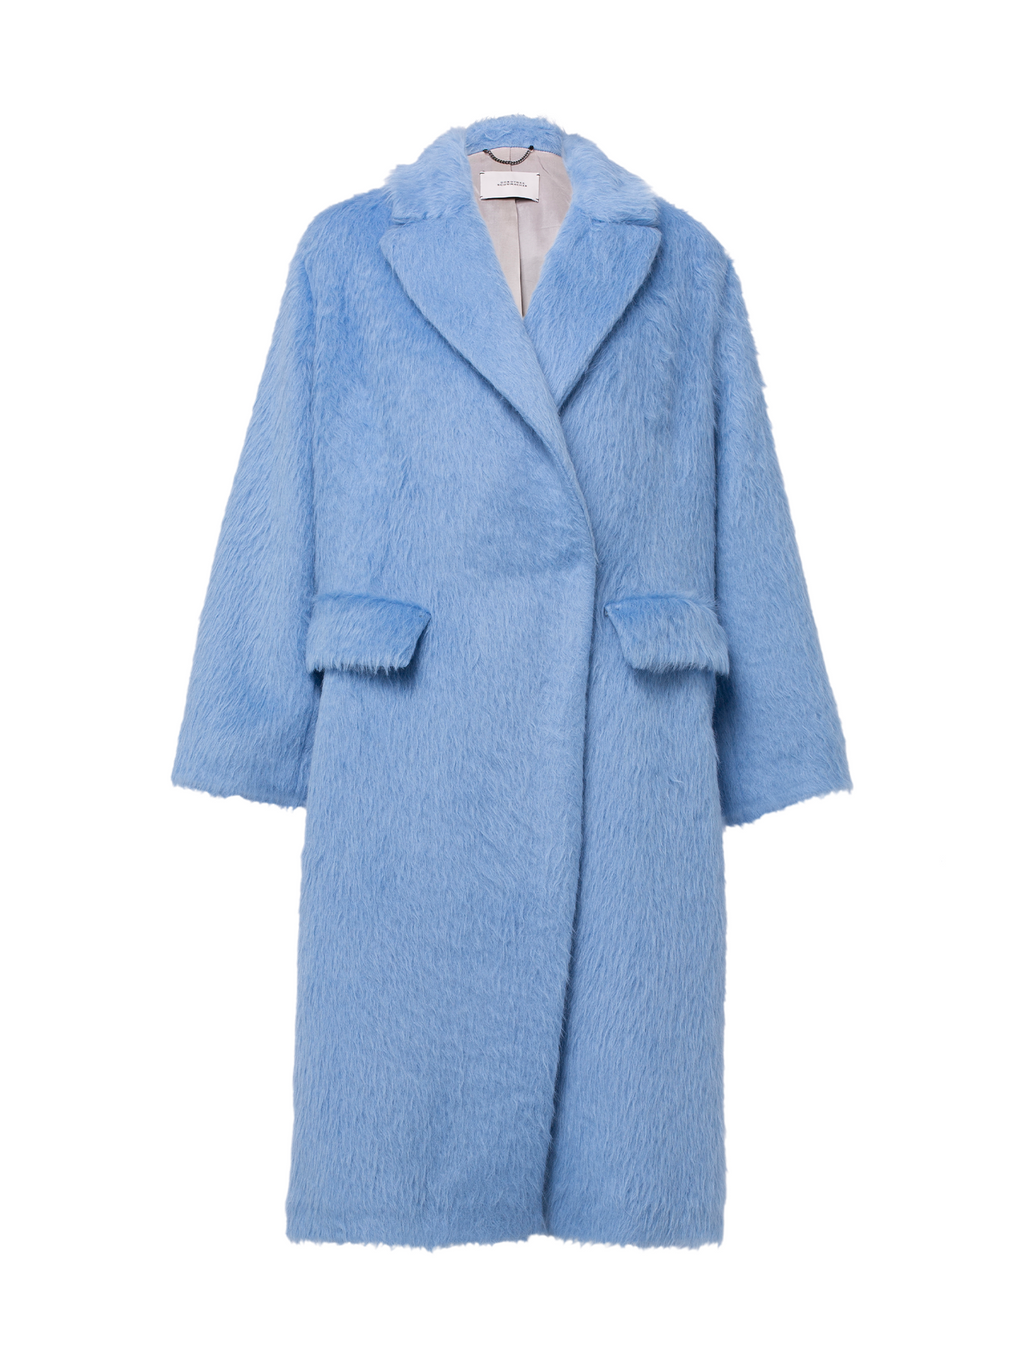 Dorothee Schumacher Pure Luxury Coat